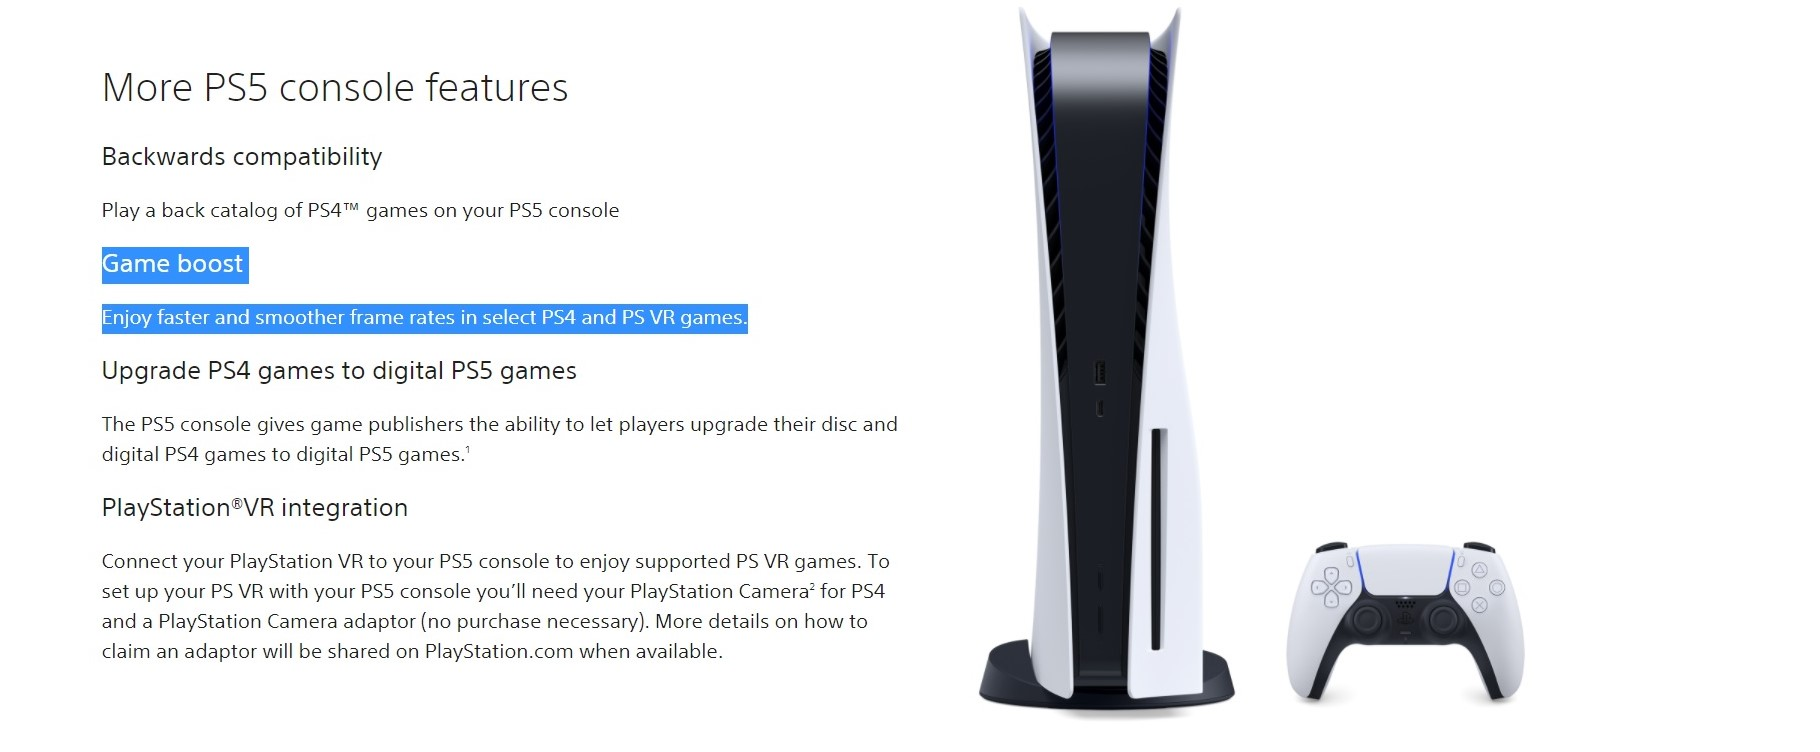 ps5 backward compatibility faster frame rates